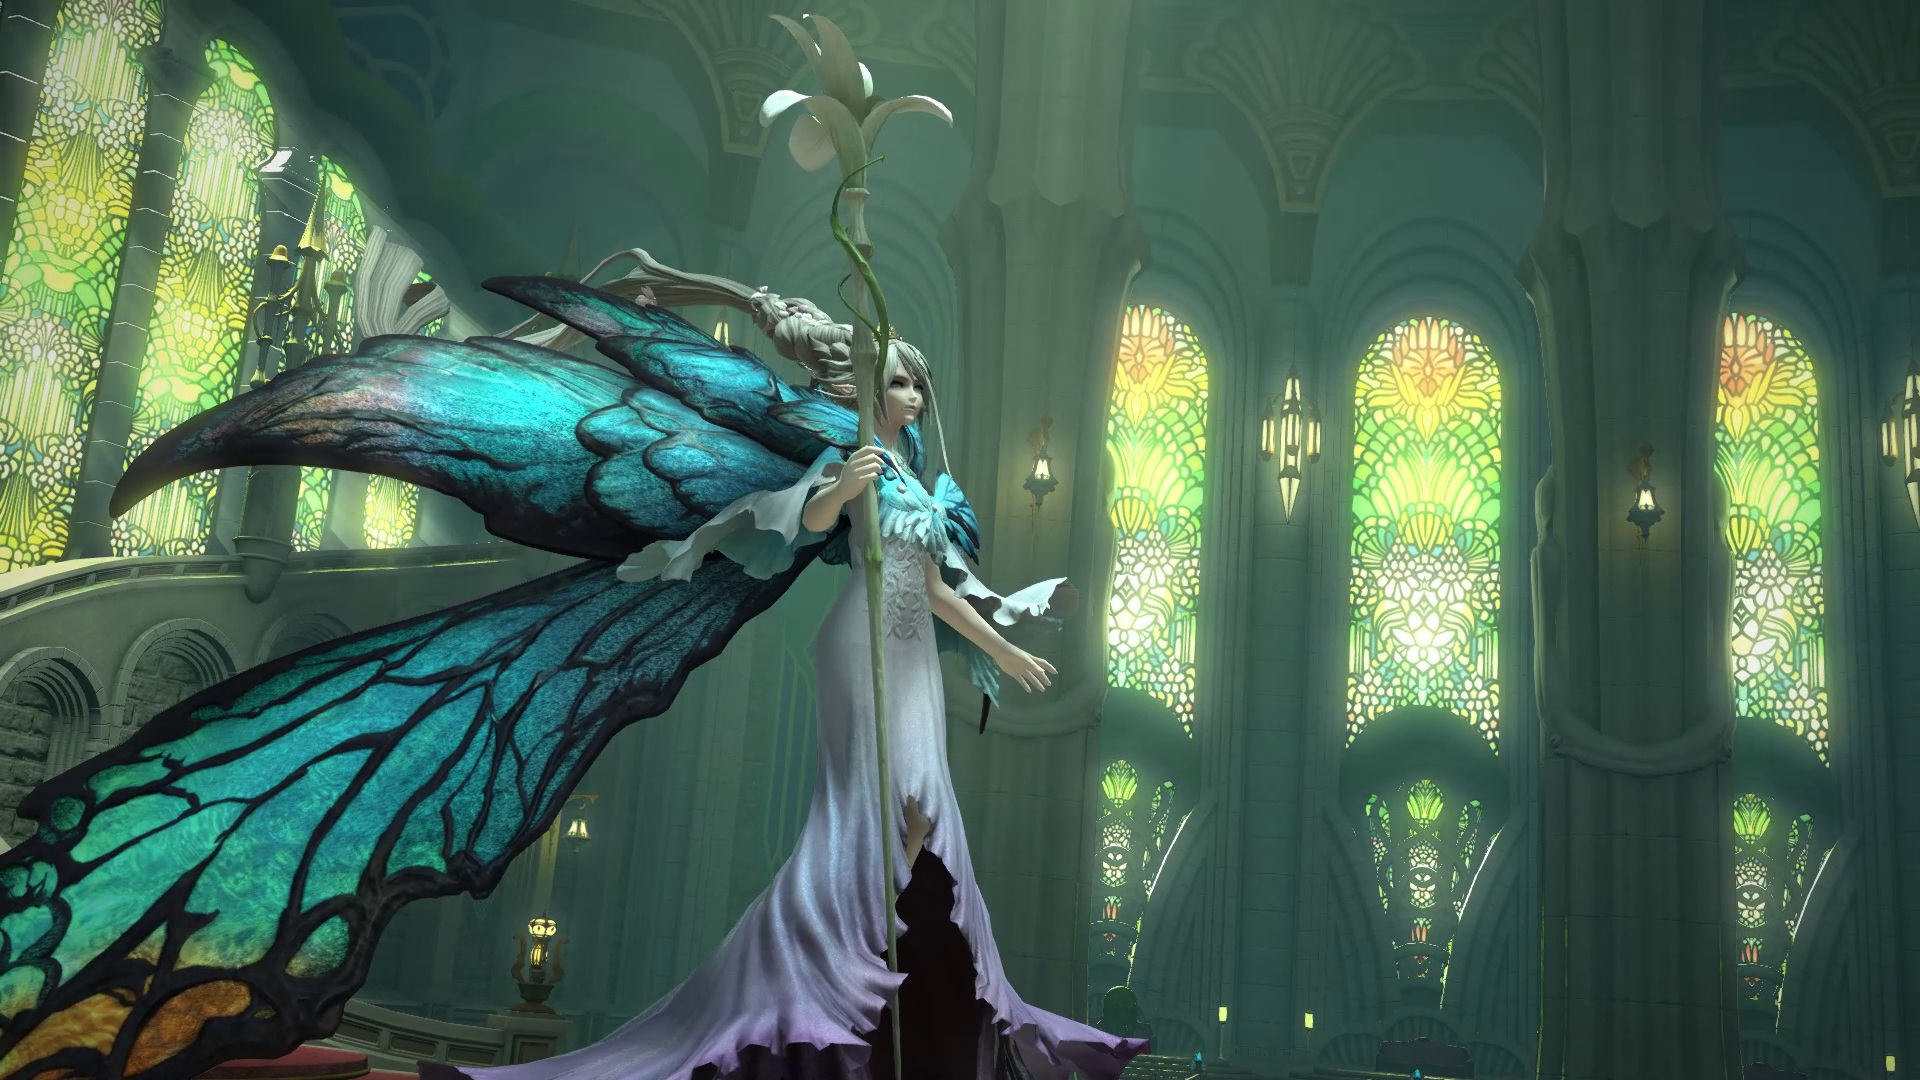 Final Fantasy 14: Shadowbringers - Titania, The Dancing